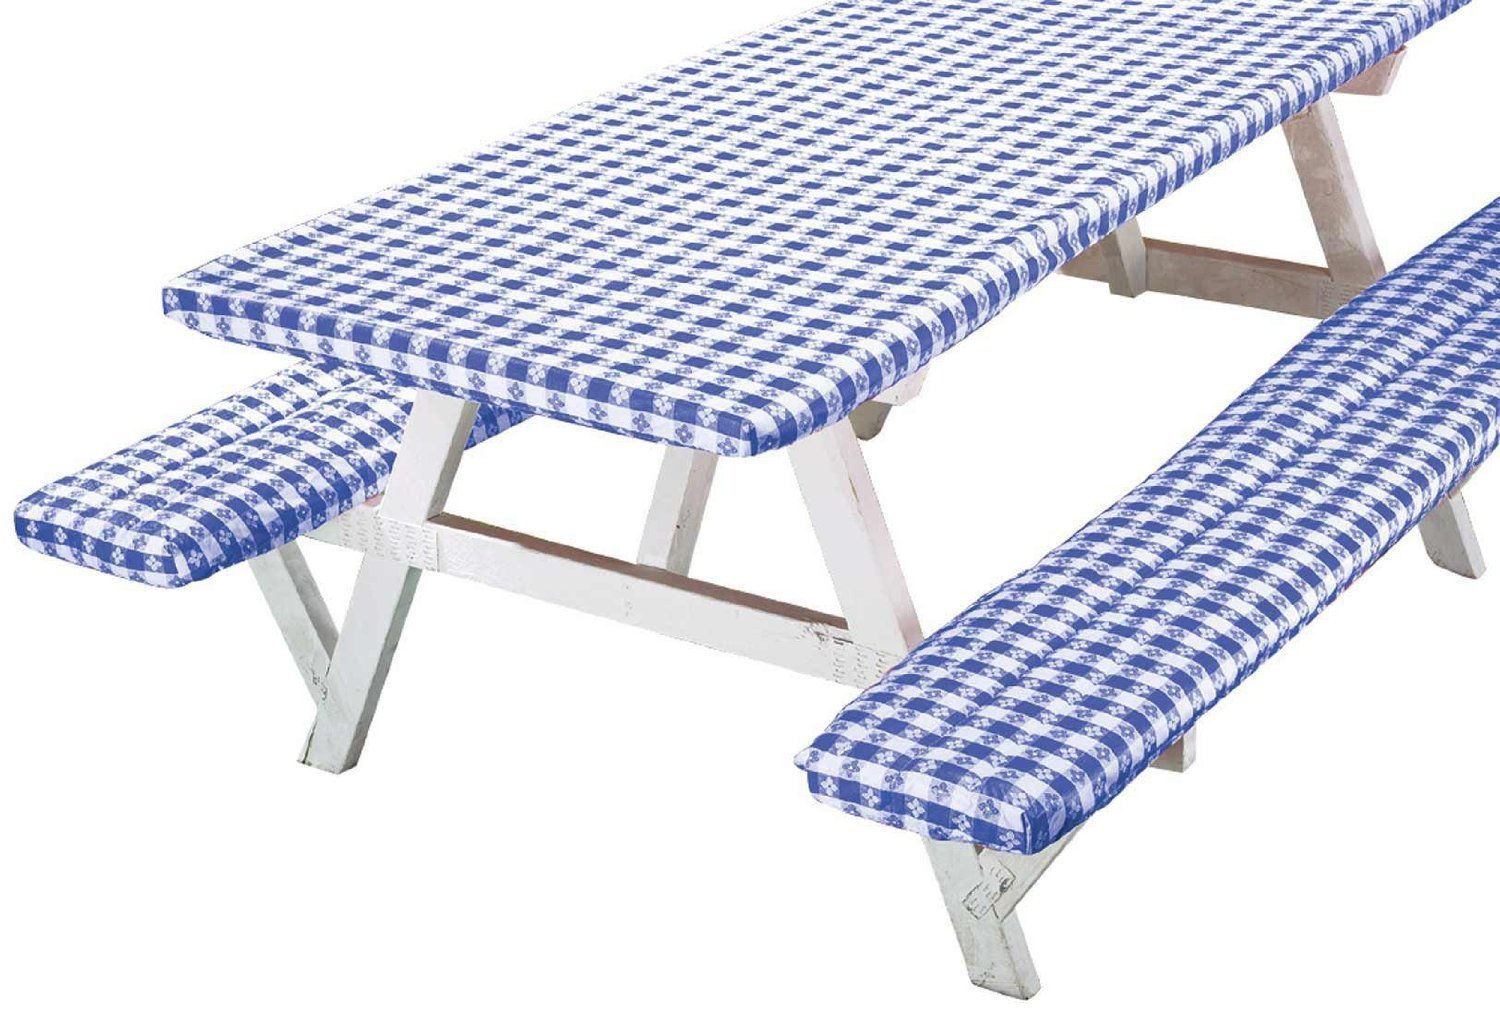 Awesome Deluxe Picnic Table Cover (Set Of 3)   Walmart.com